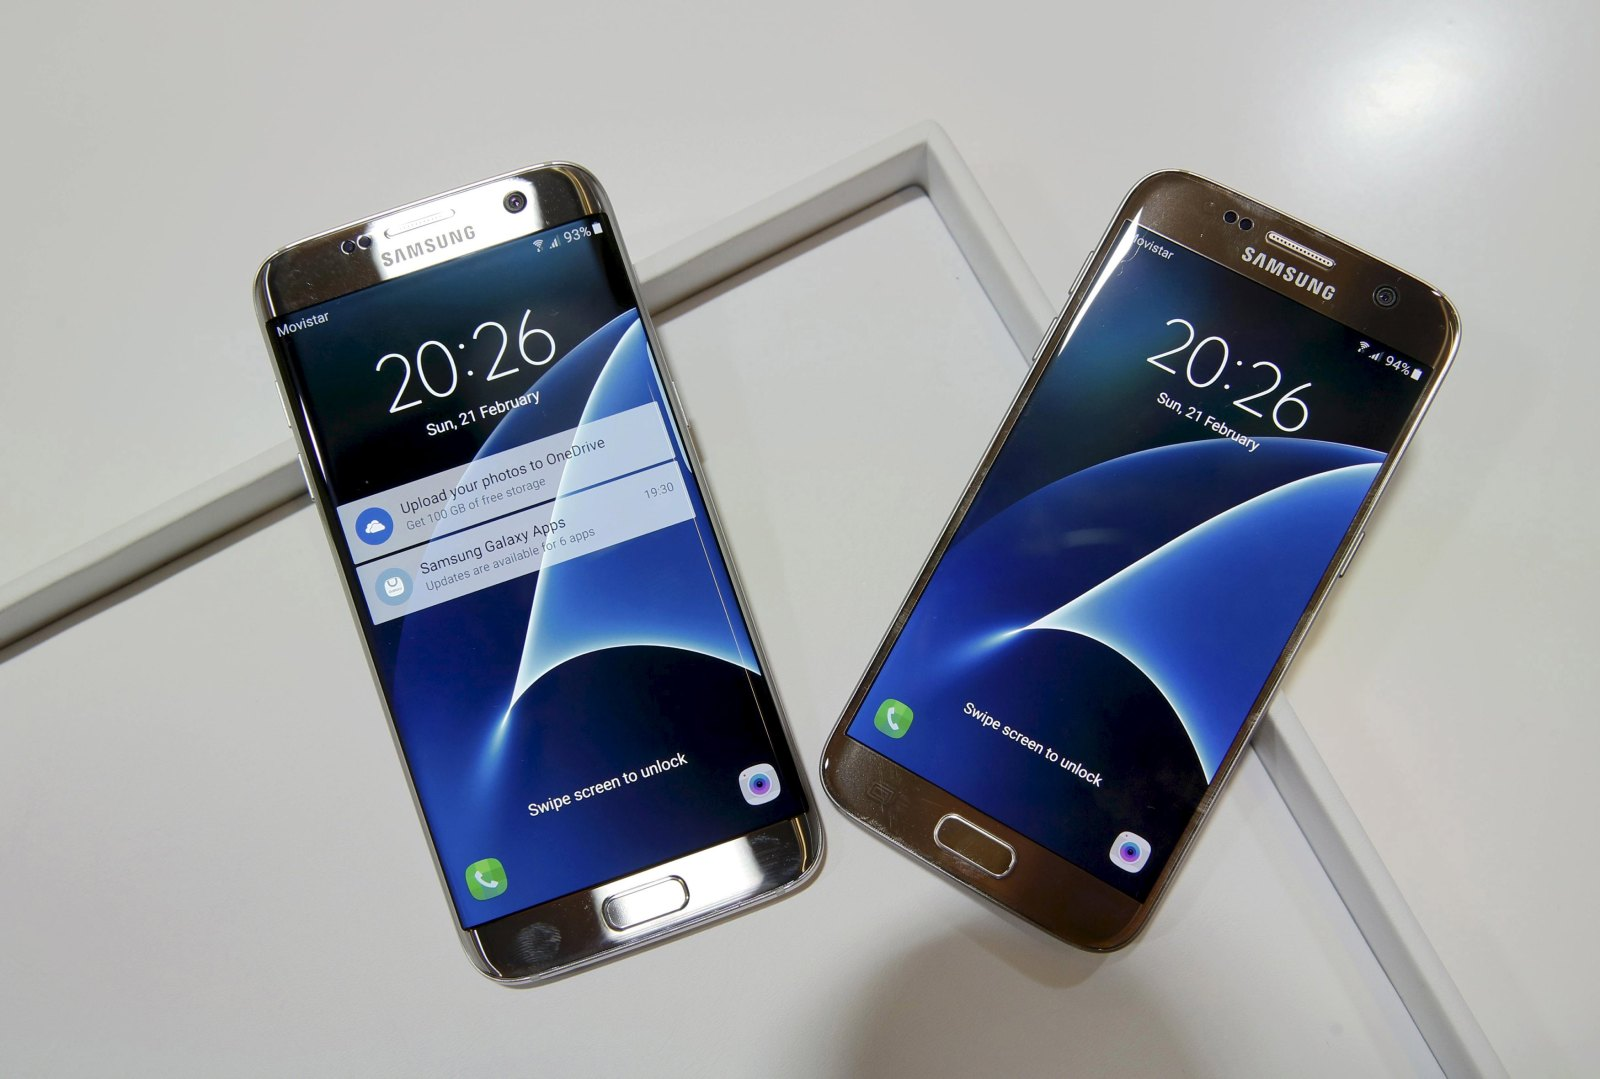 New Samsung S7 and S7 edge smartphones are displayed after their unveiling ceremony at the Mobile World Congress in Barcelona